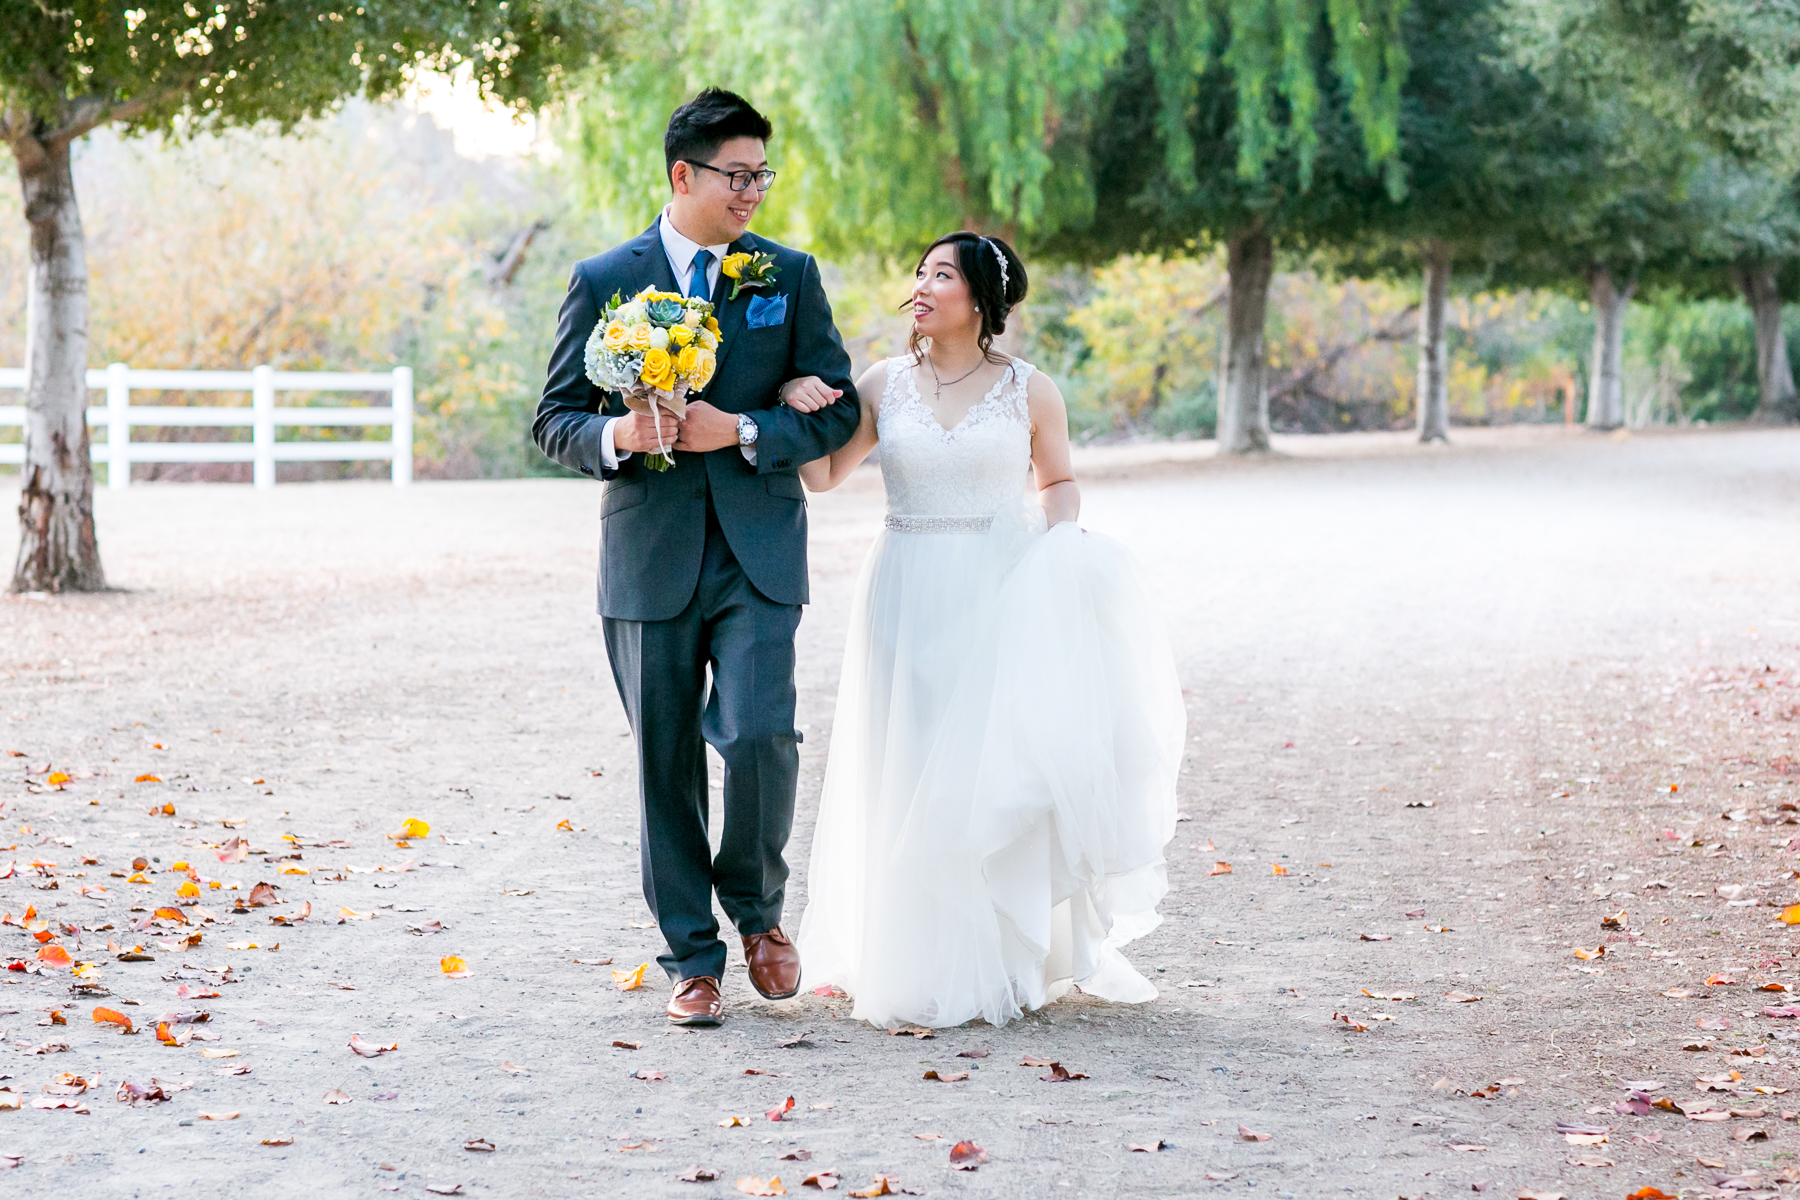 bride and groom walking photo at mccoy equestrian center in chino hills photos